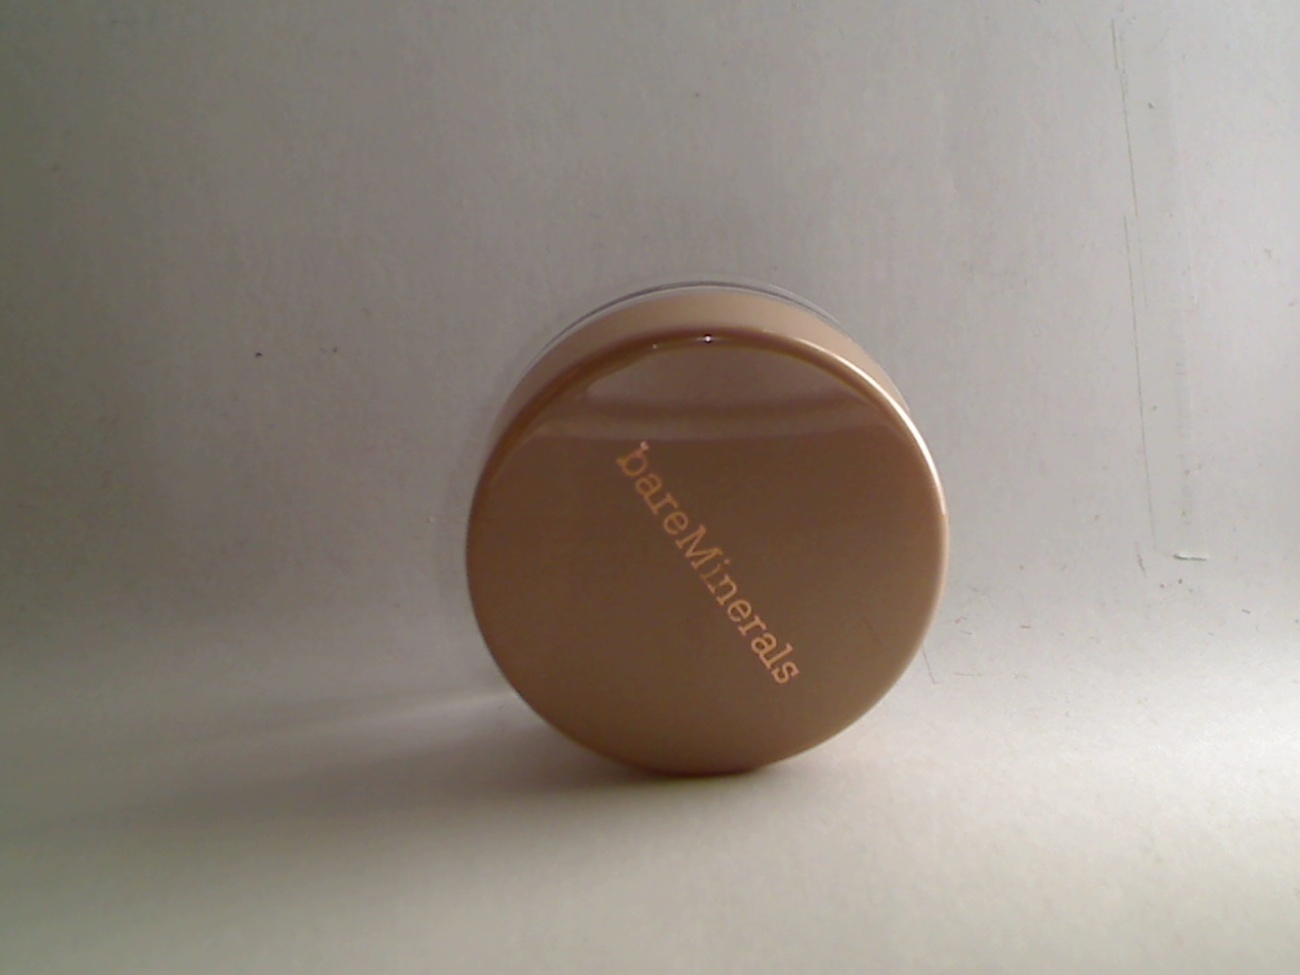 Bare Escentuals bareMinerals Eyecolor Eye Shadow Magnificent Pearl discontinued